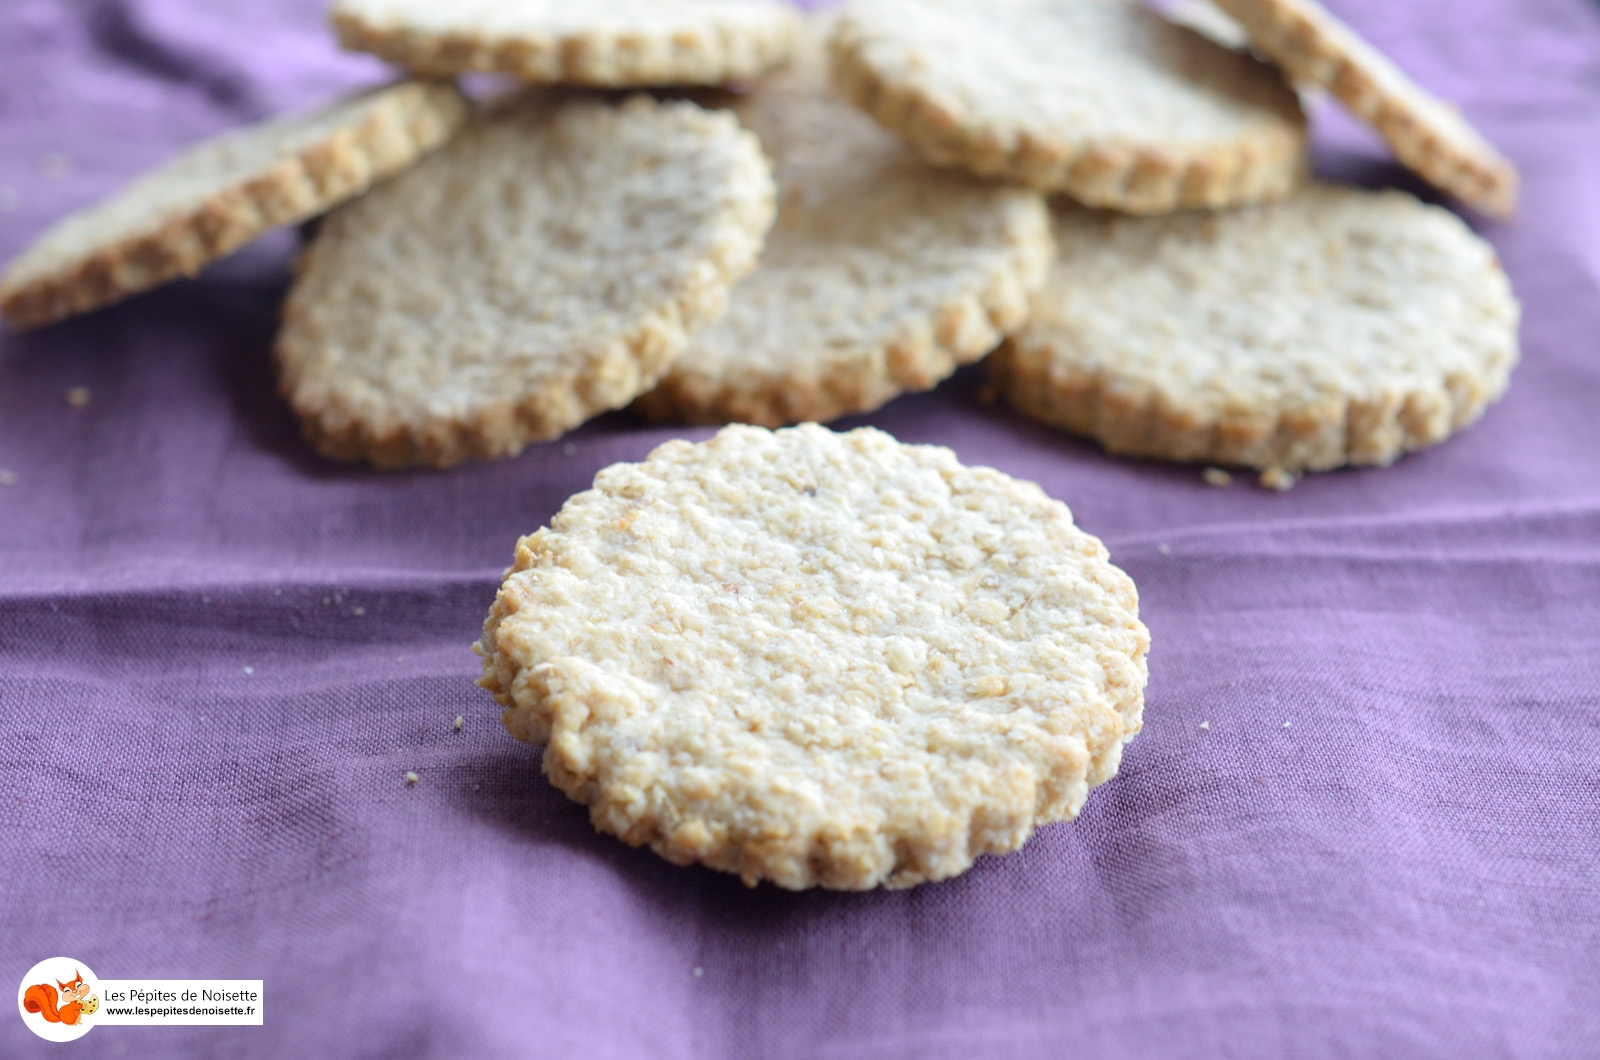 Biscuits Avoine Digestive (8 Sur 8)